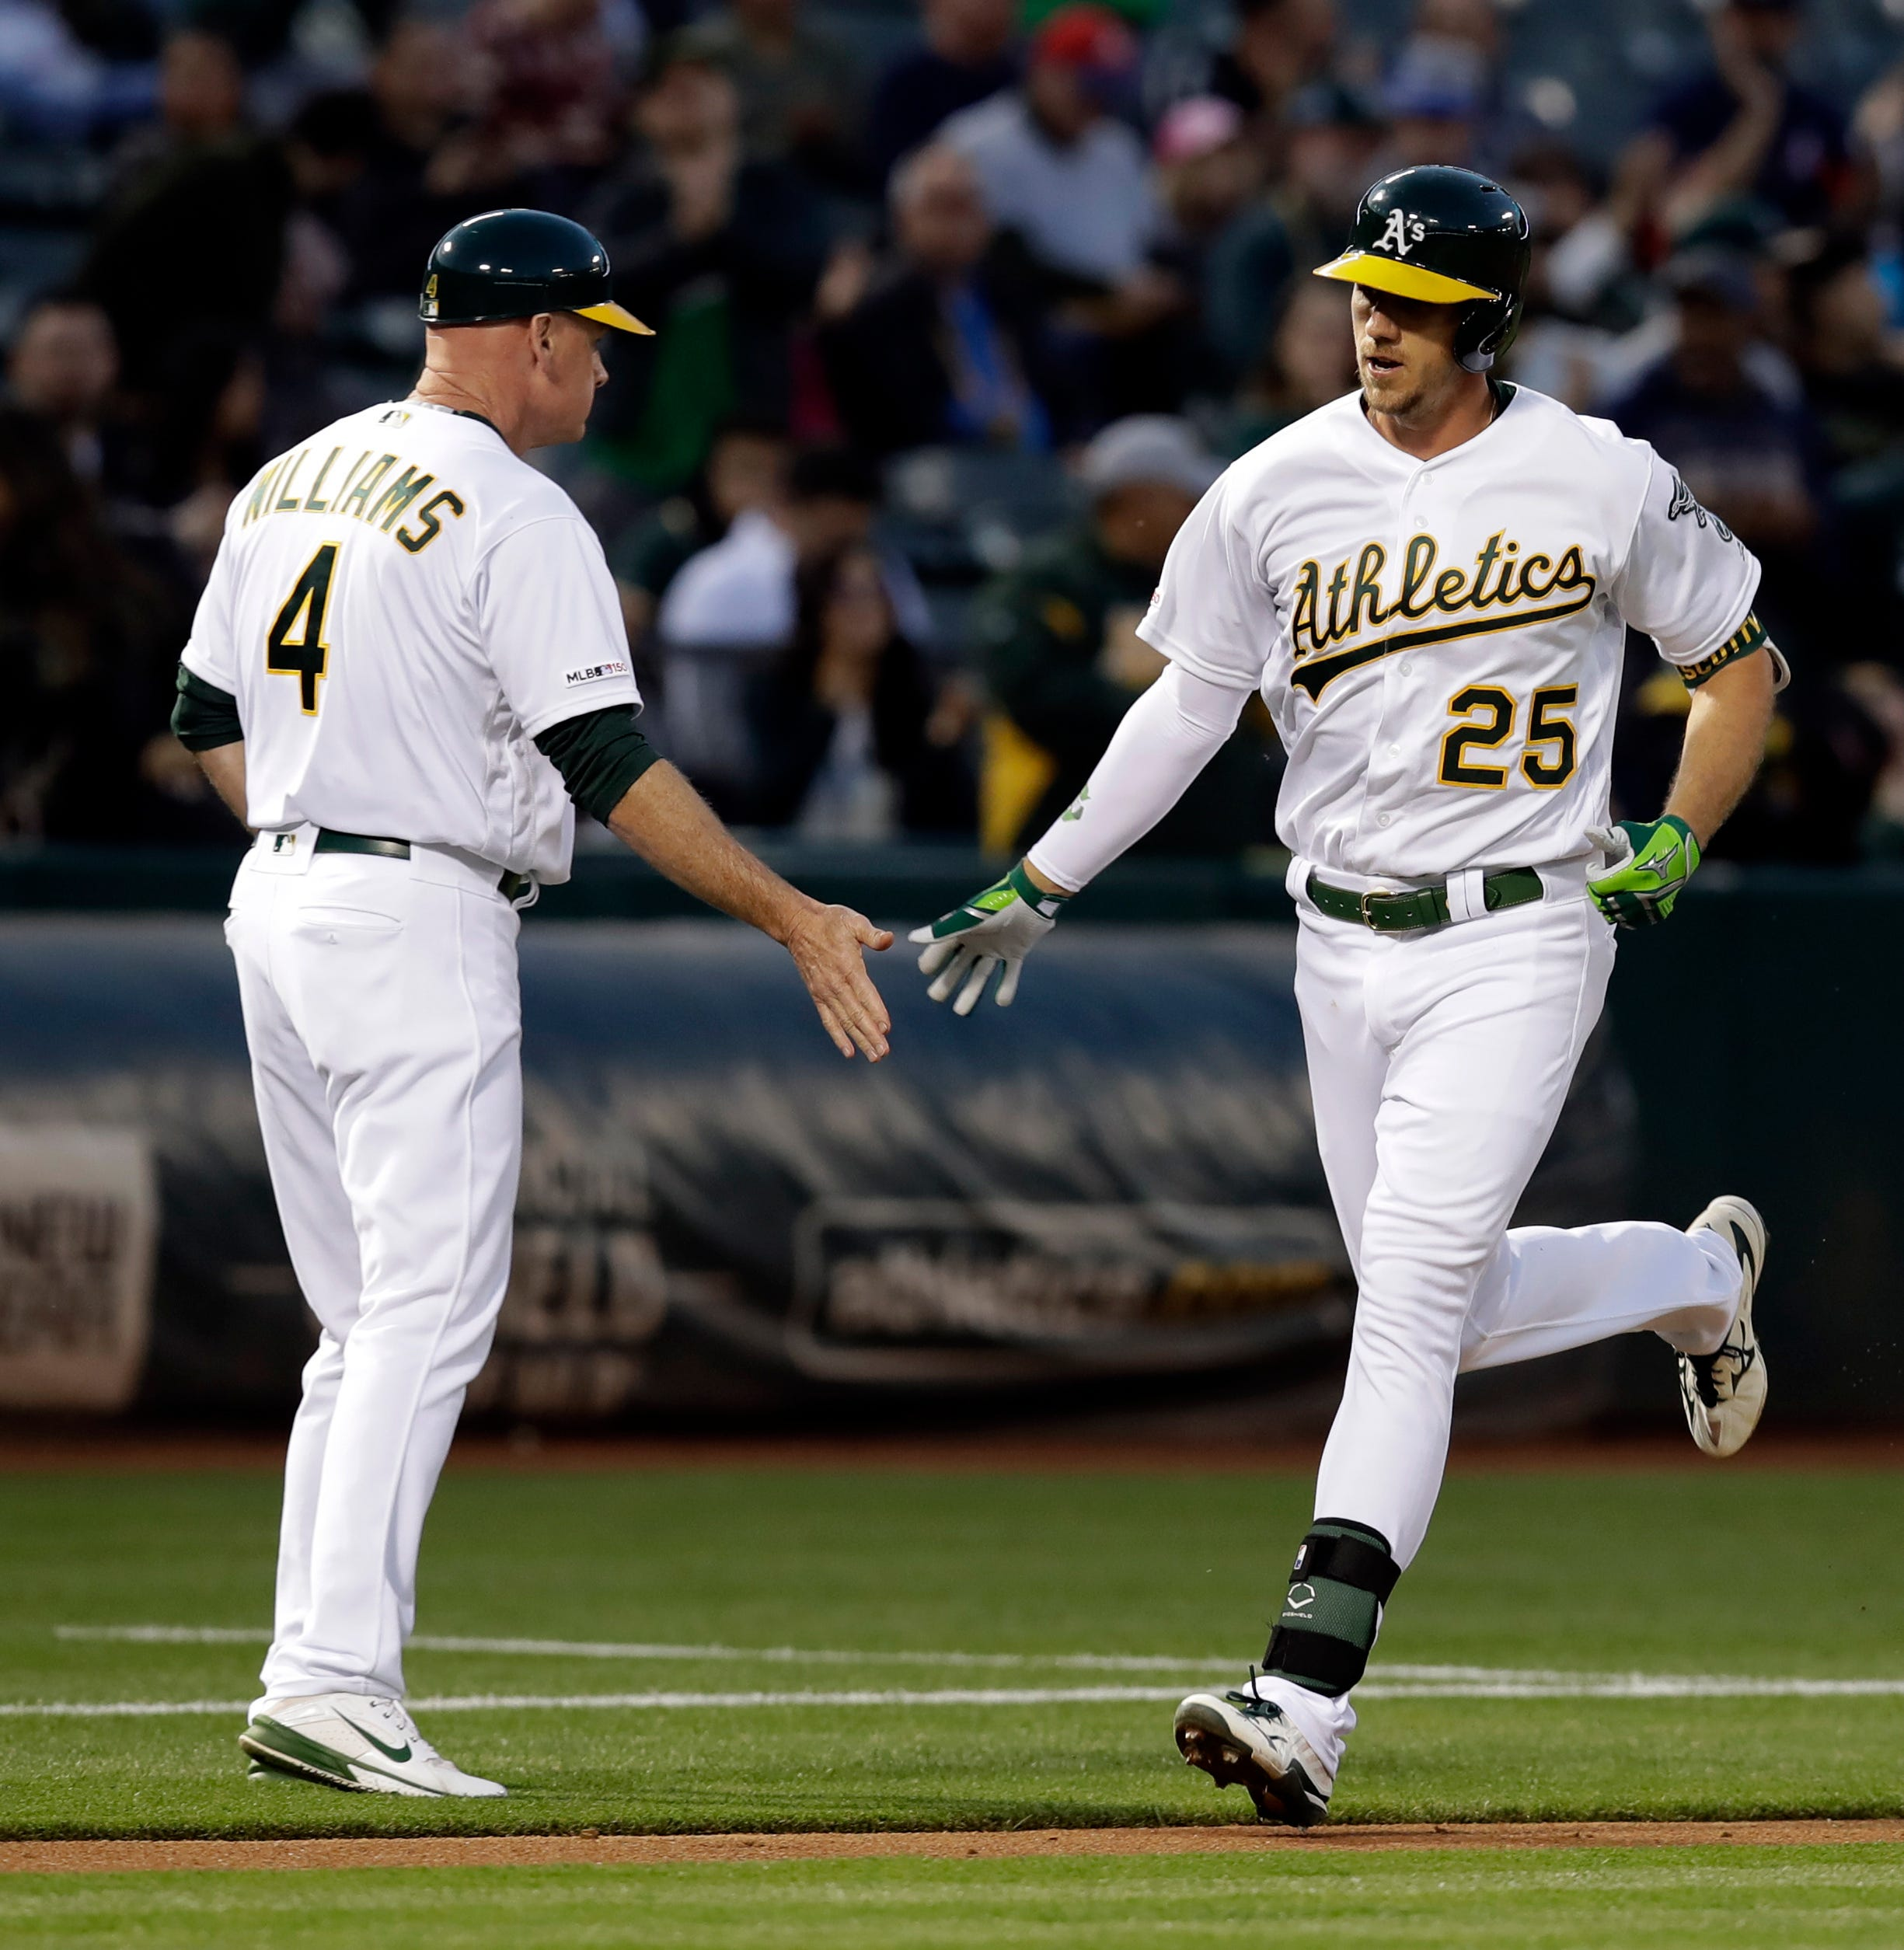 Piscotty's 3 RBIs lead A's over Rangers, end 3-game skid